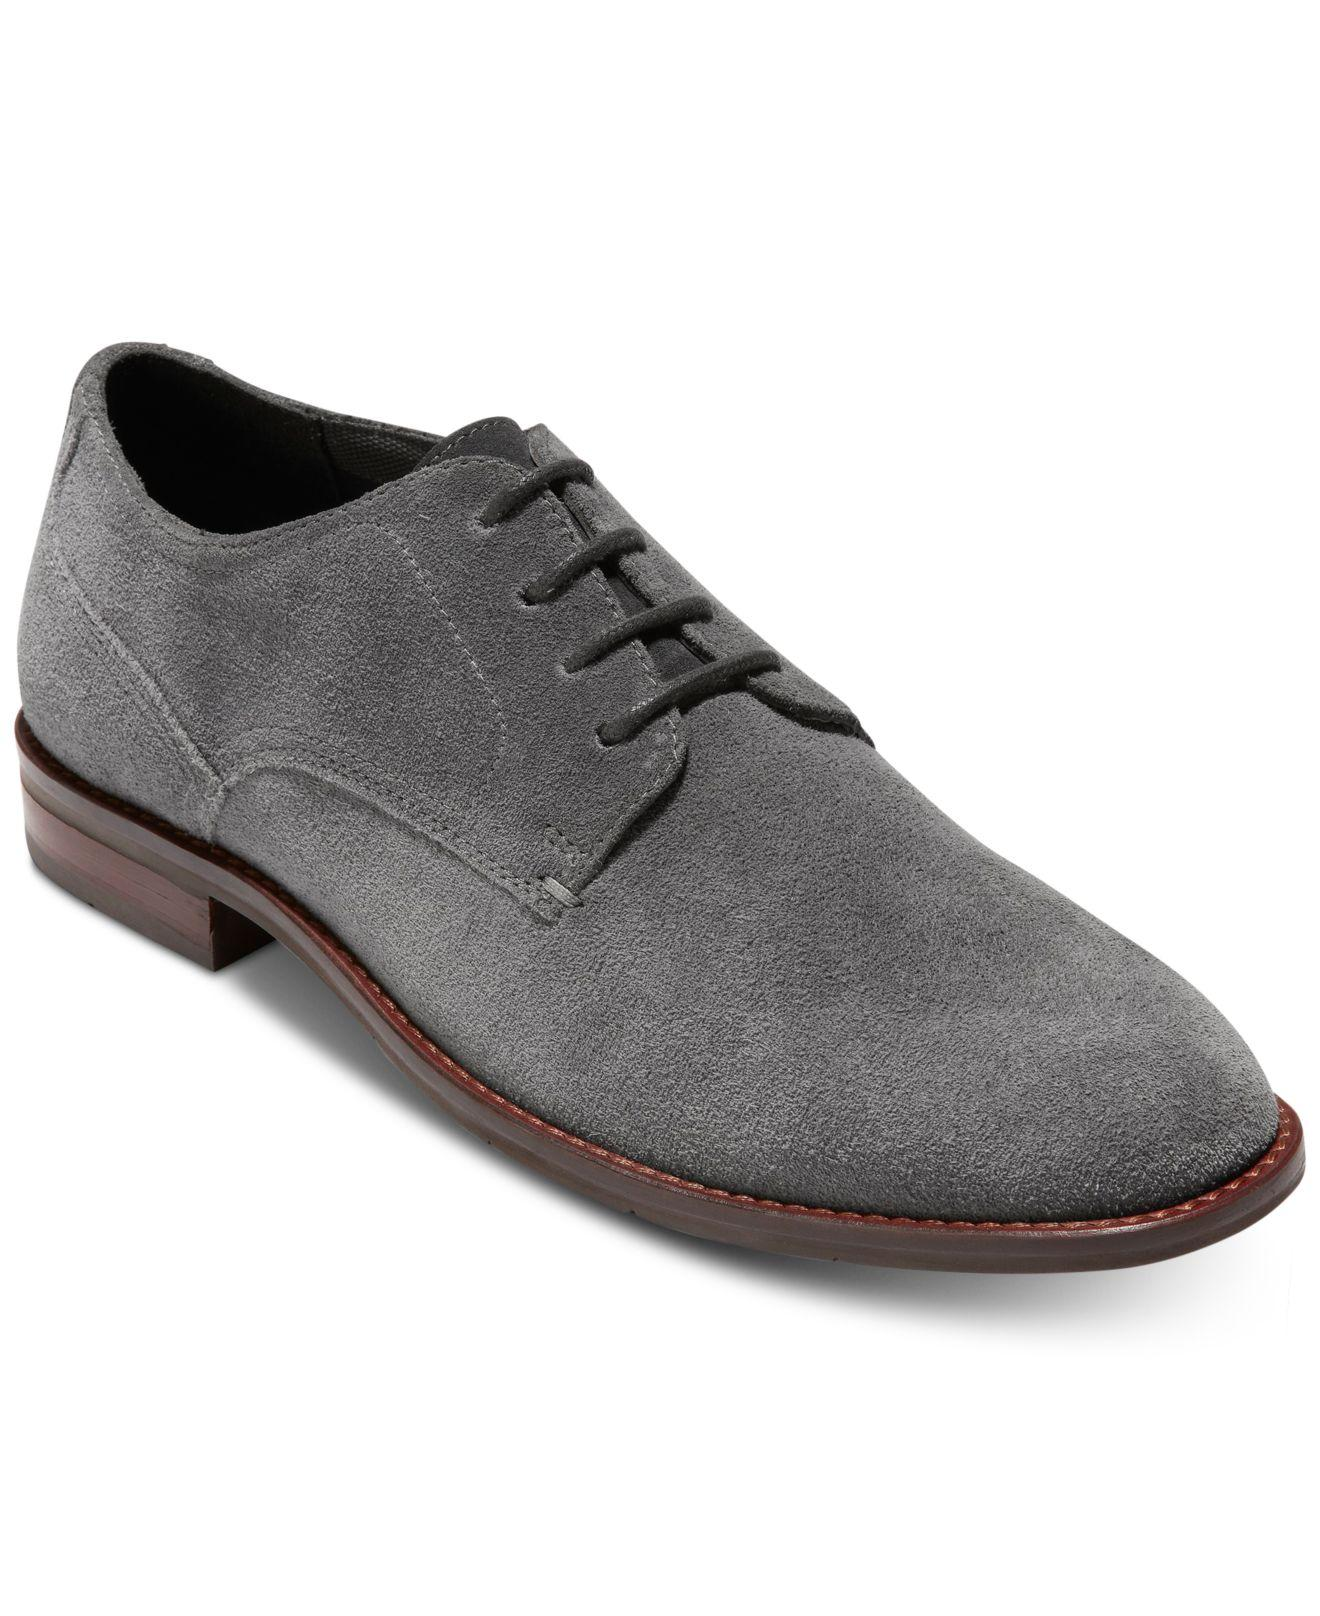 outlet good real deal Aerocraft Grand.360 Plain Toe Oxford